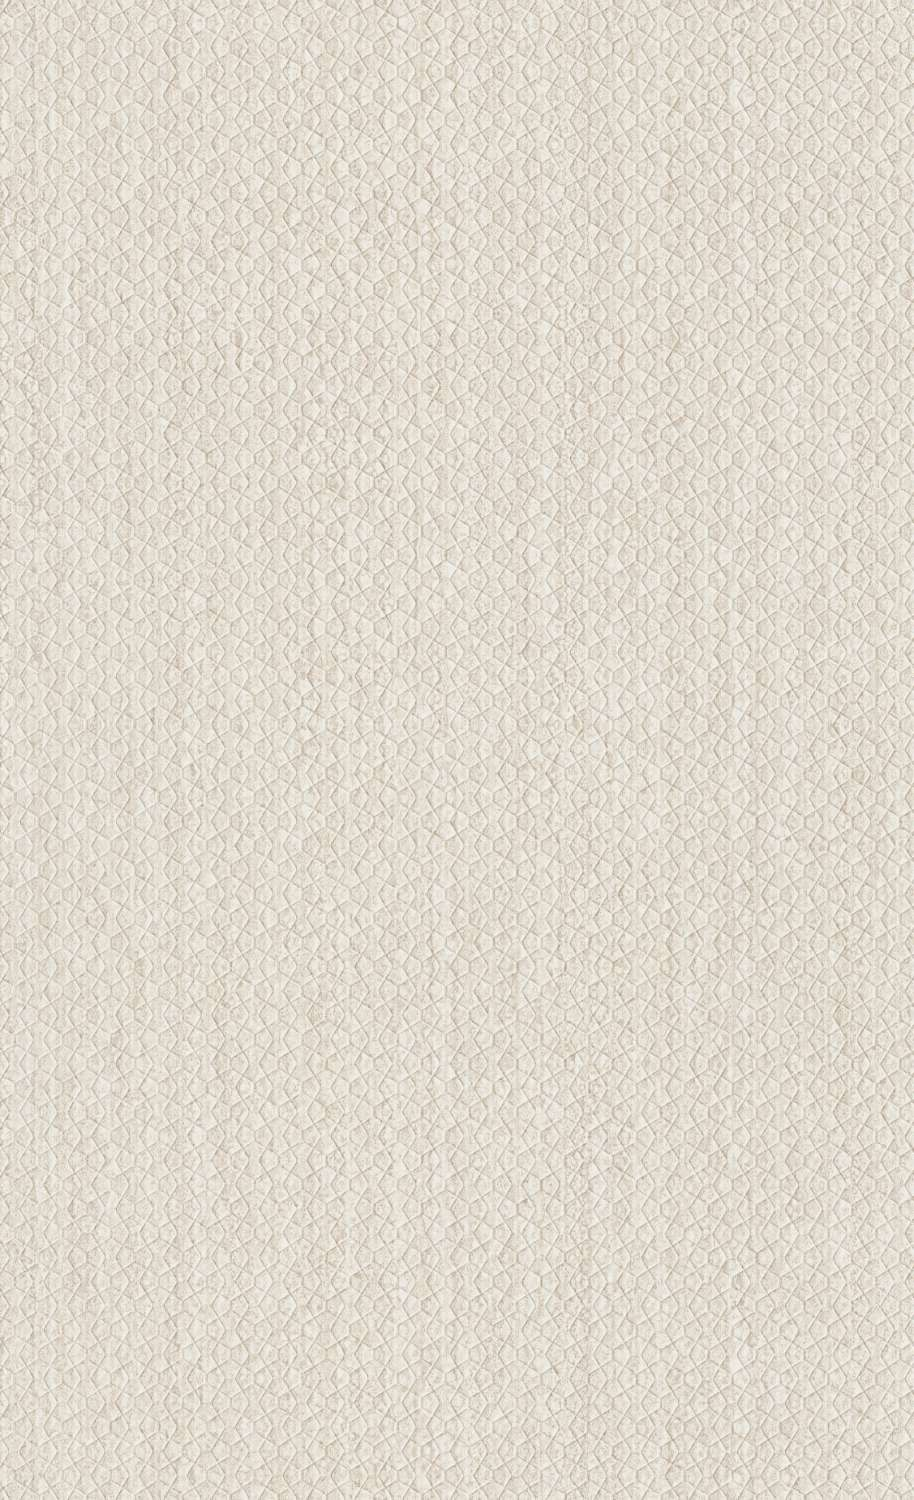 Beige Metallic Wallpaper C7306 | Commercial & Hospitality